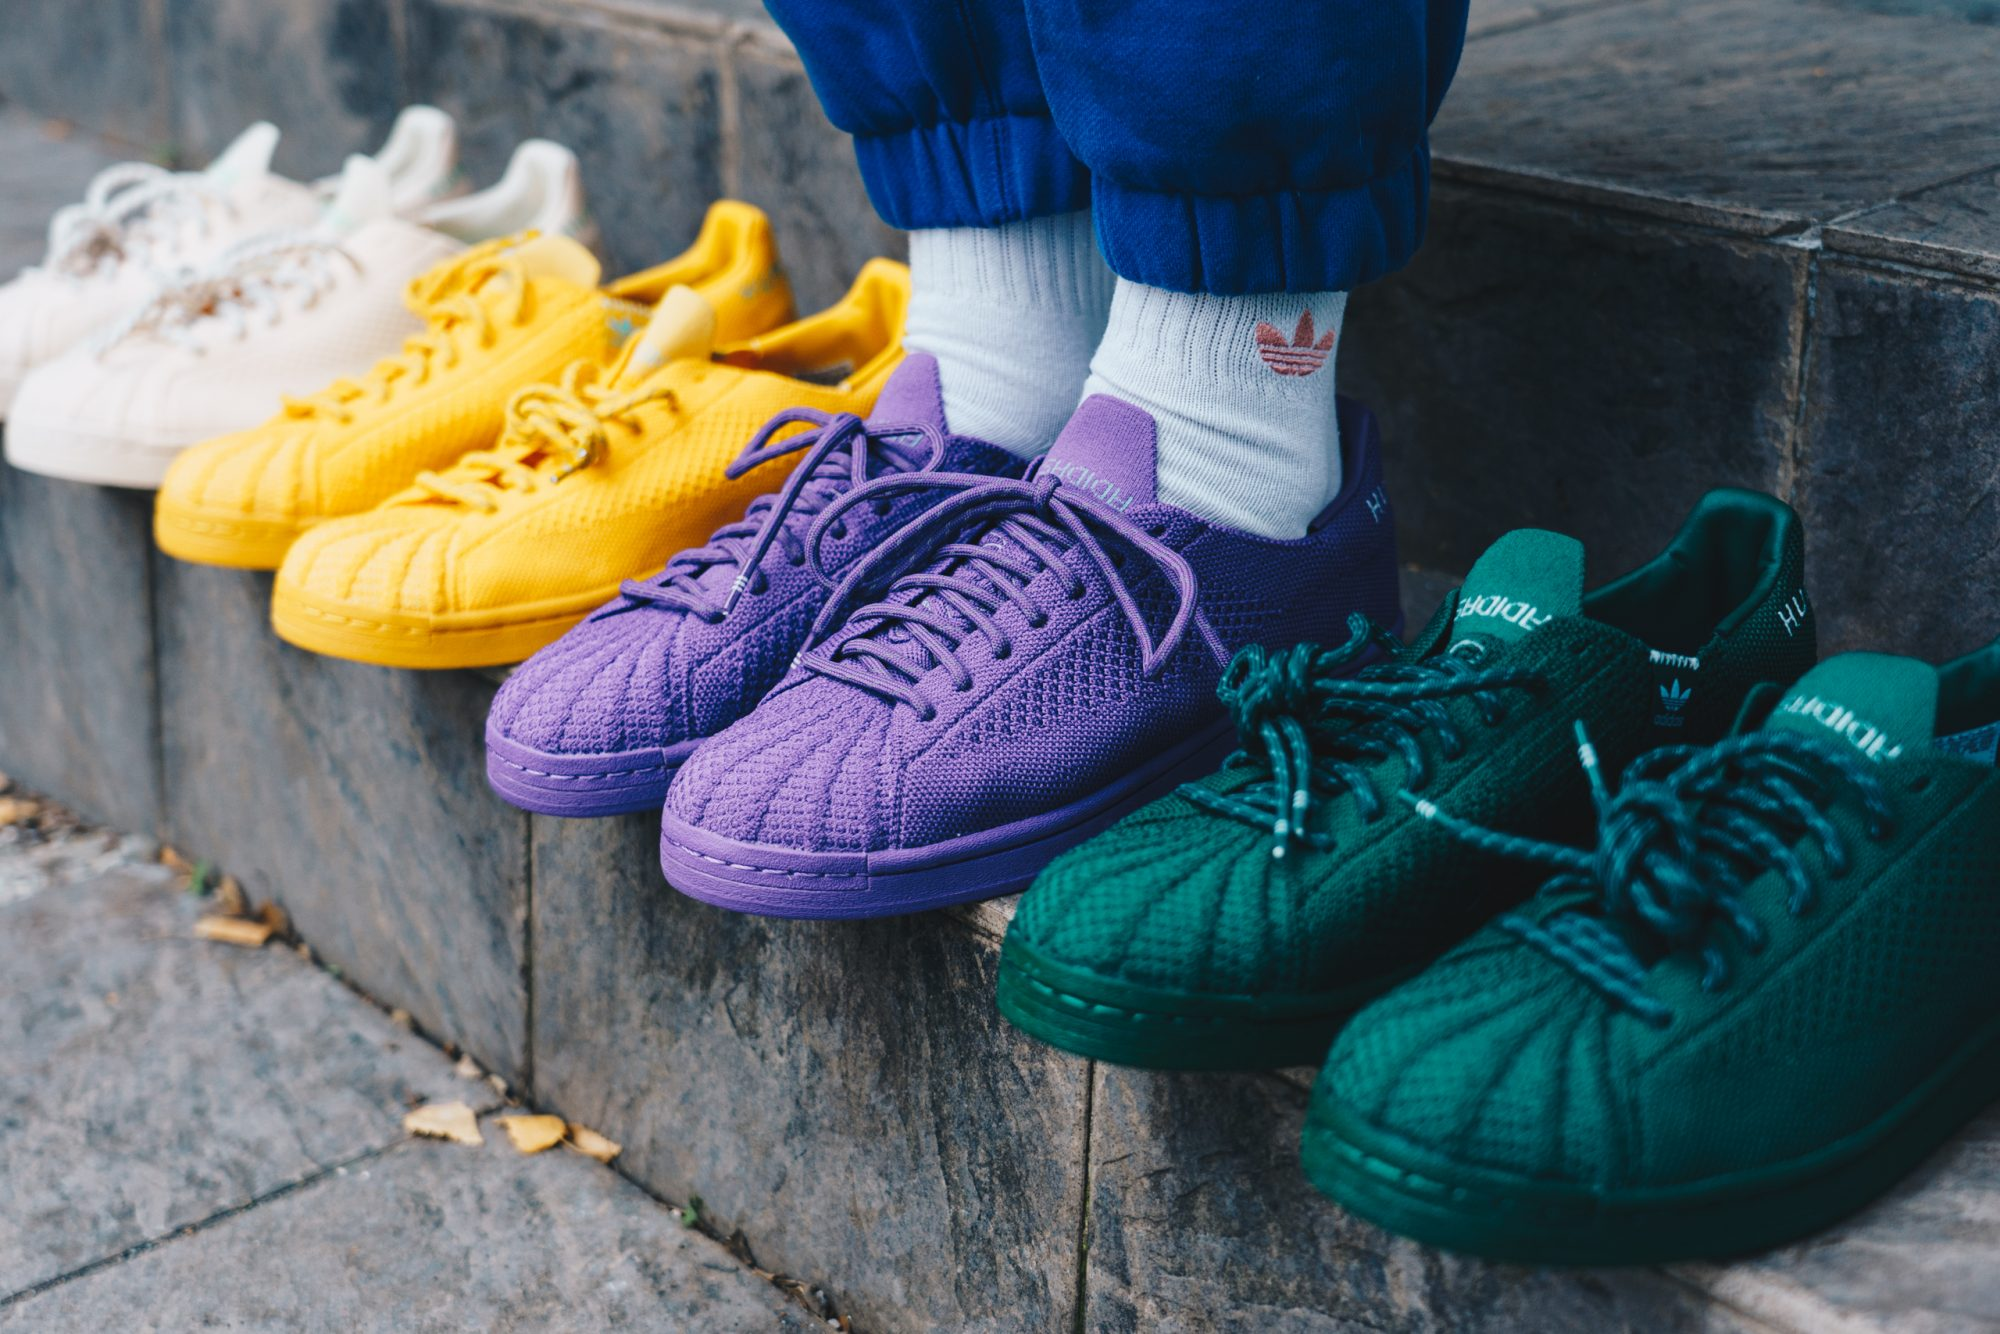 The adidas Originals x Pharrell Williams' collaboration color palette